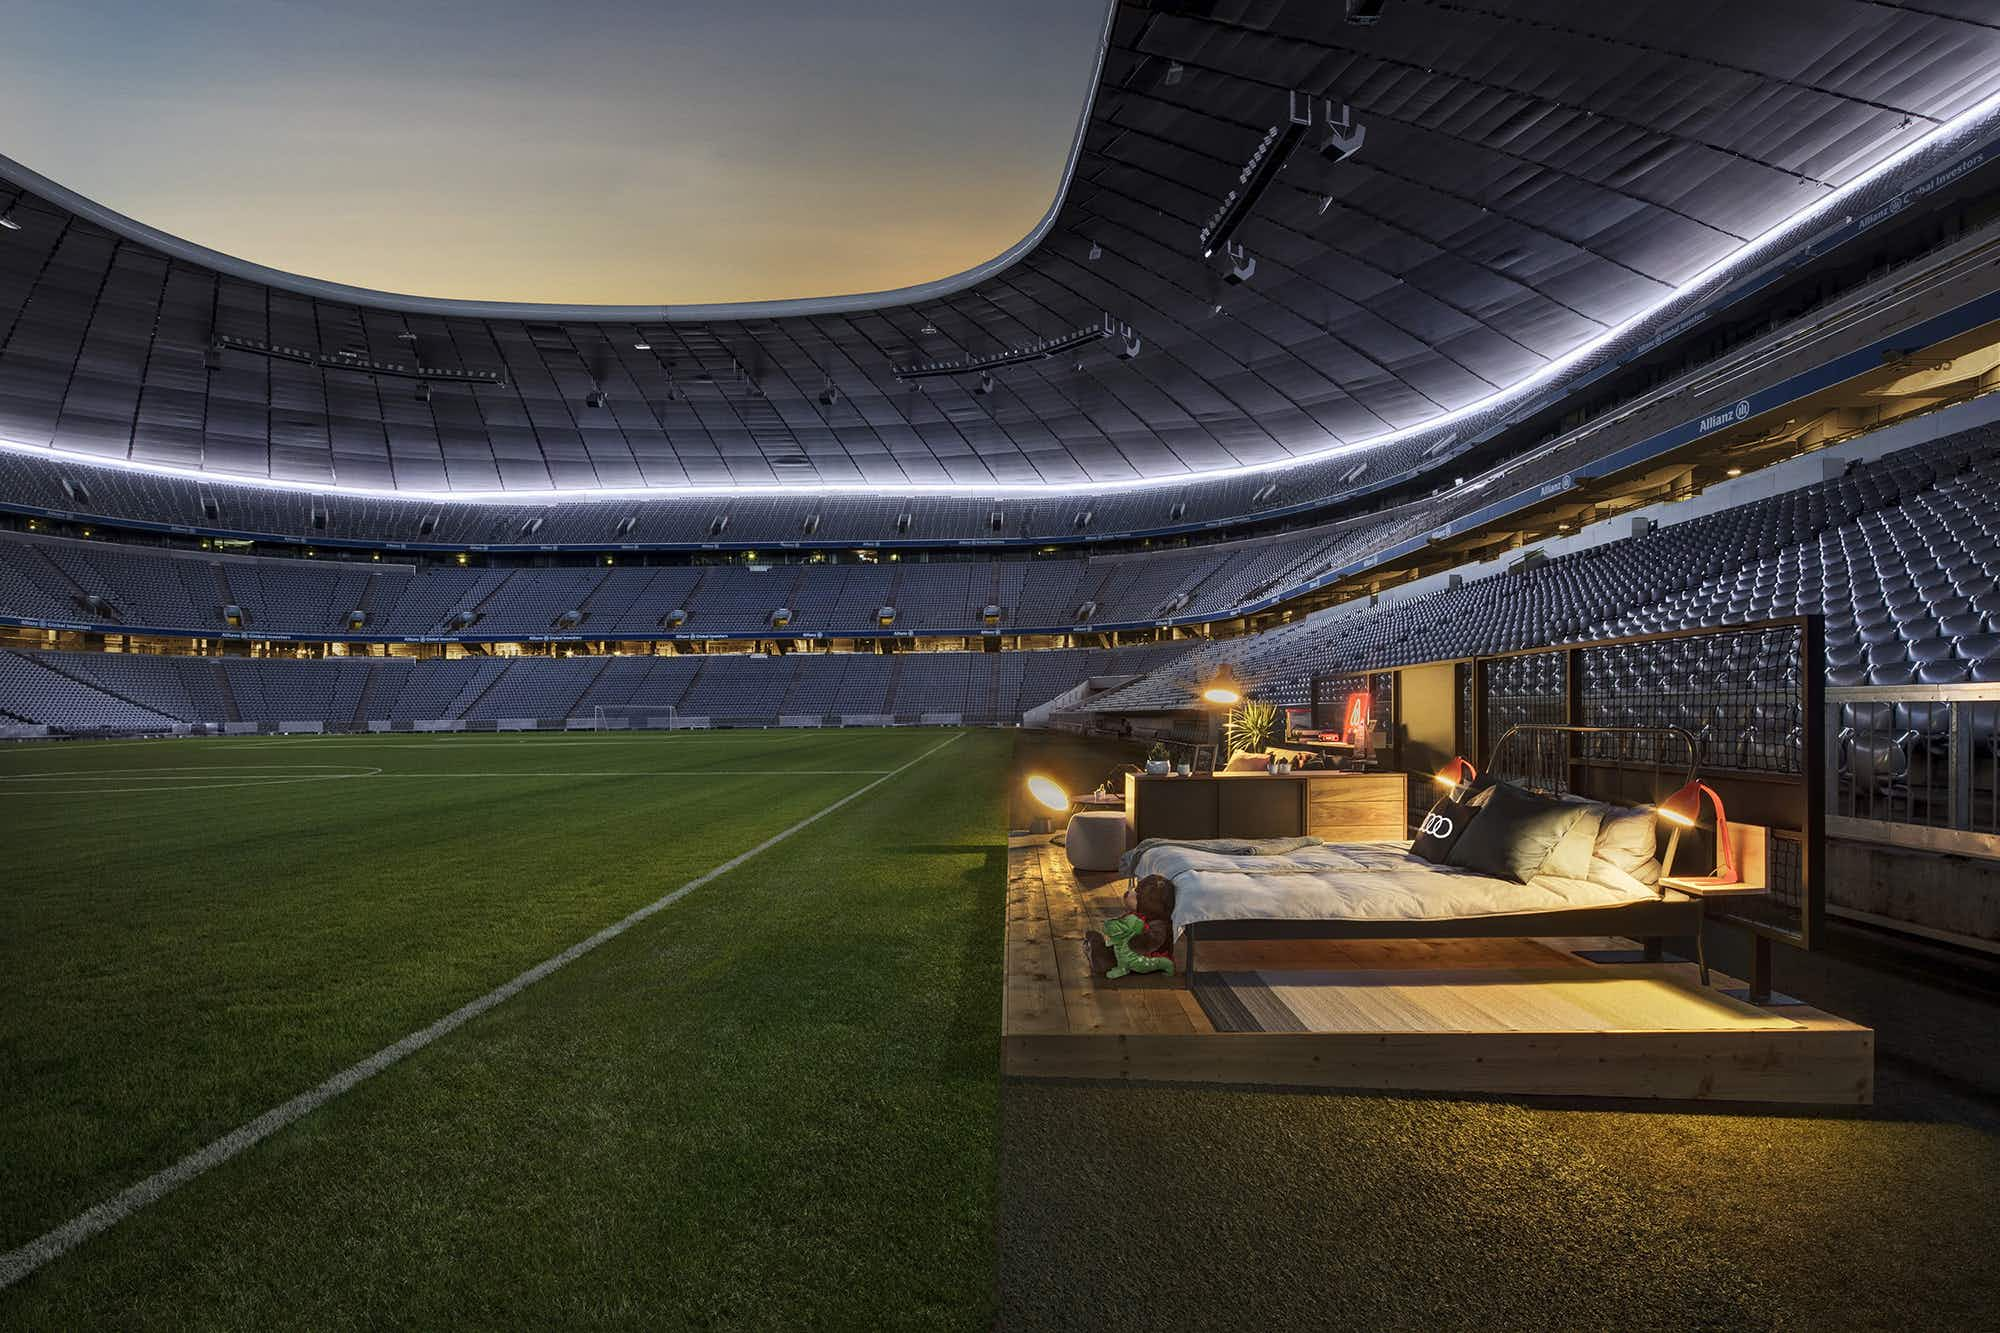 You can stay in one of Europe's most famous football stadiums during the Audi Cup